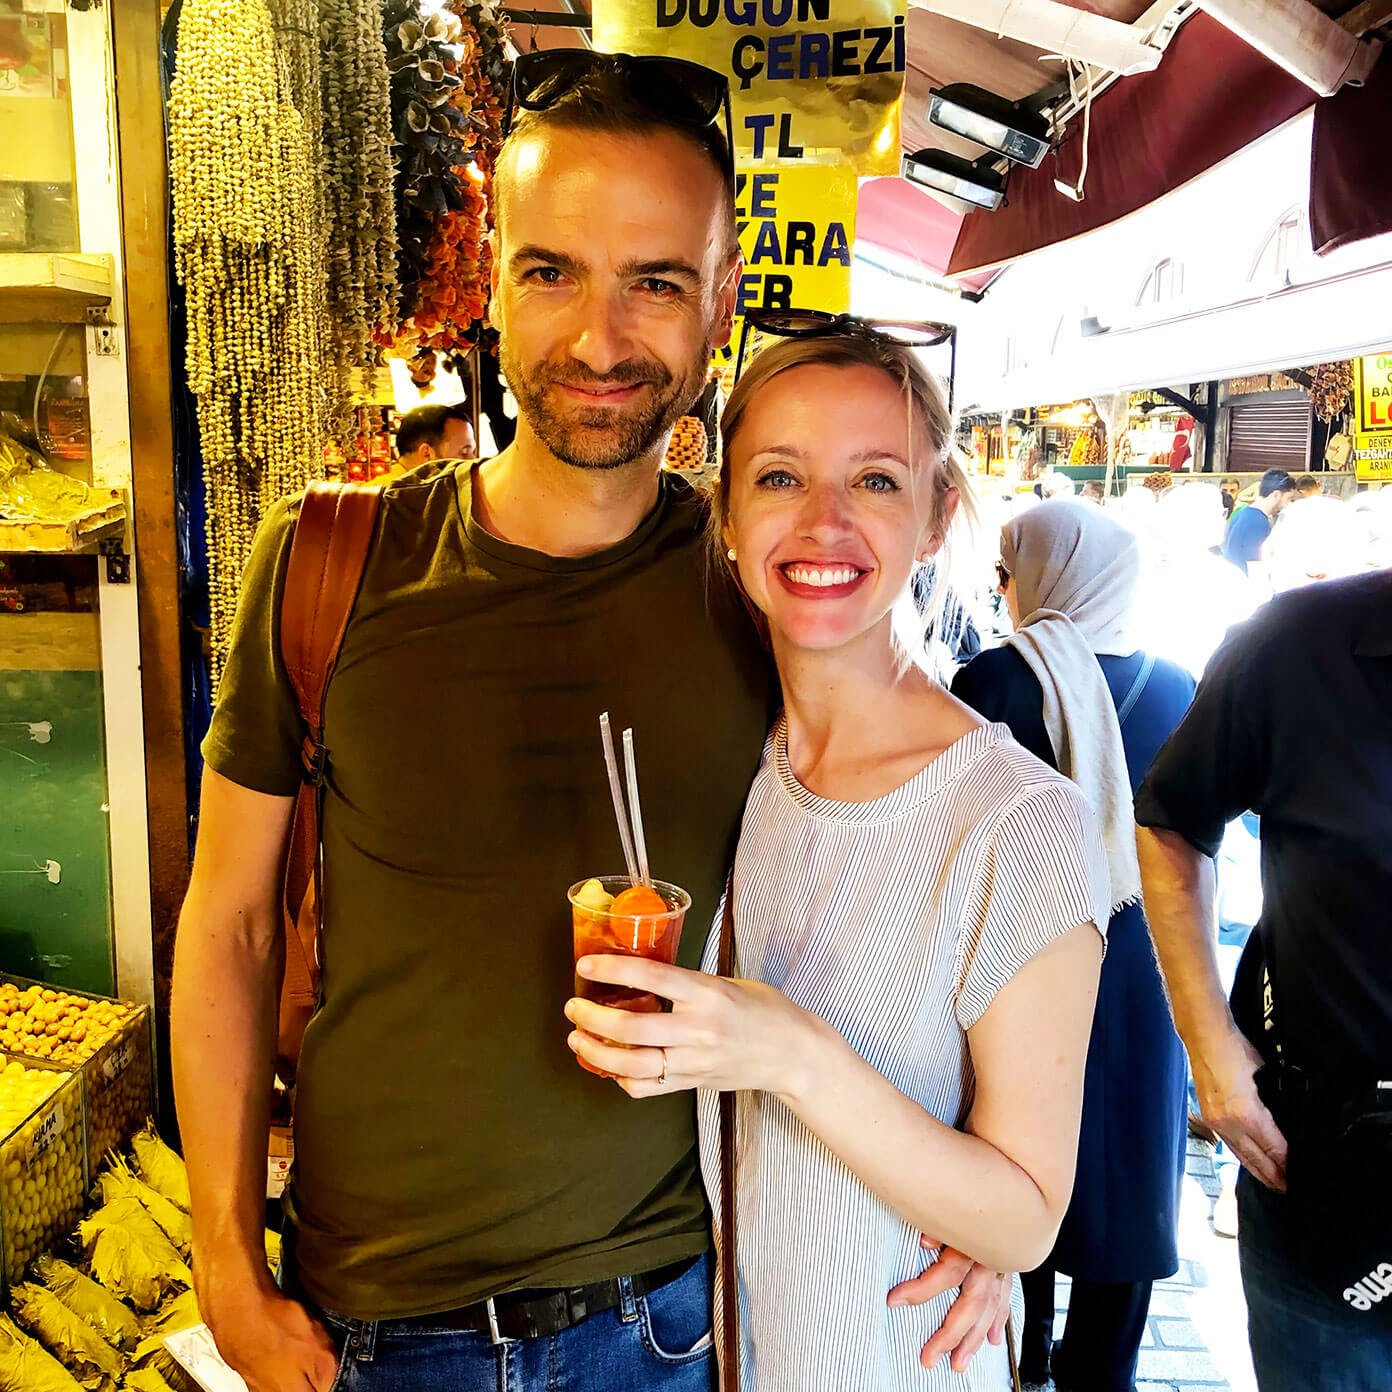 Pickle juice in Istanbul spice market food tour